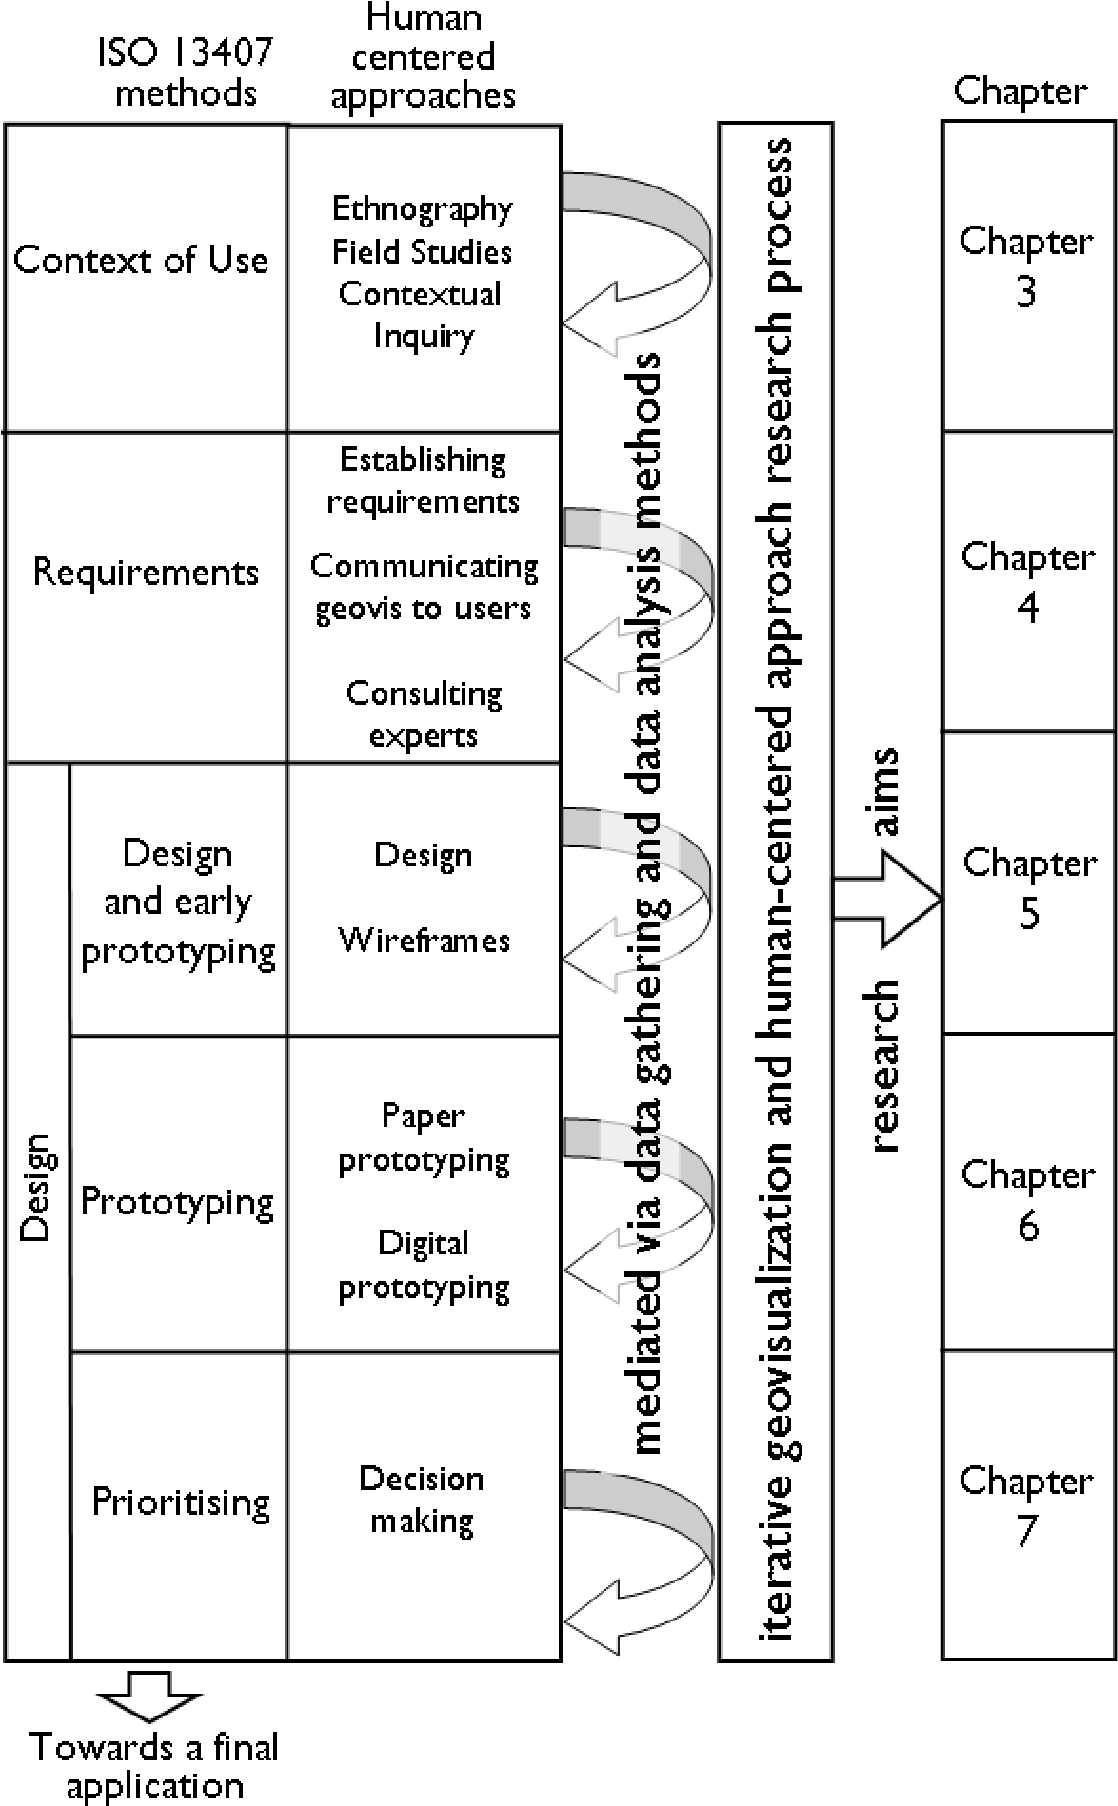 Figure 2.1: Outline of thesis methodology showing the iterative nature of the research and analysis methods and the orthogonal orientation of the research aims and application building